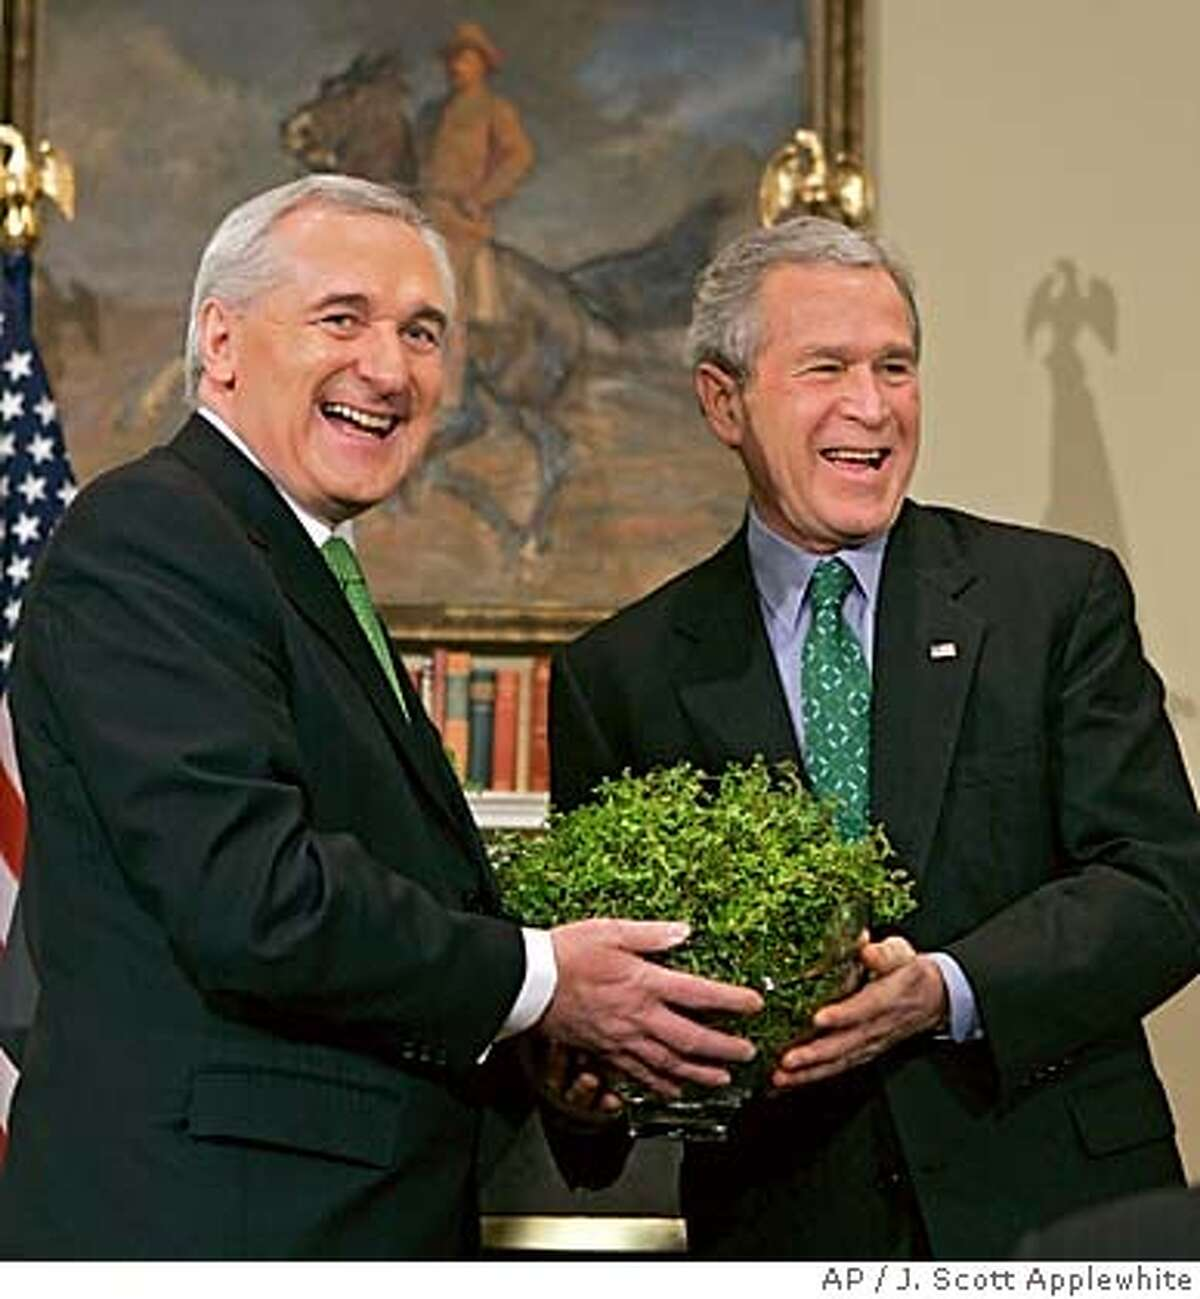 Ireland's Prime Minister Bertie Ahern, left, presents a bowl of shamrock to President Bush during a Saint Patrick's Day celebration in the Roosevelt Room of the White House in Washington, Thursday, March 17, 2005. (AP Photo/J. Scott Applewhite) Ran on: 03-18-2005 Irish Prime Minister Bertie Ahern (left) gives President Bush a bowl of shamrock to celebrate St. Patricks Day.